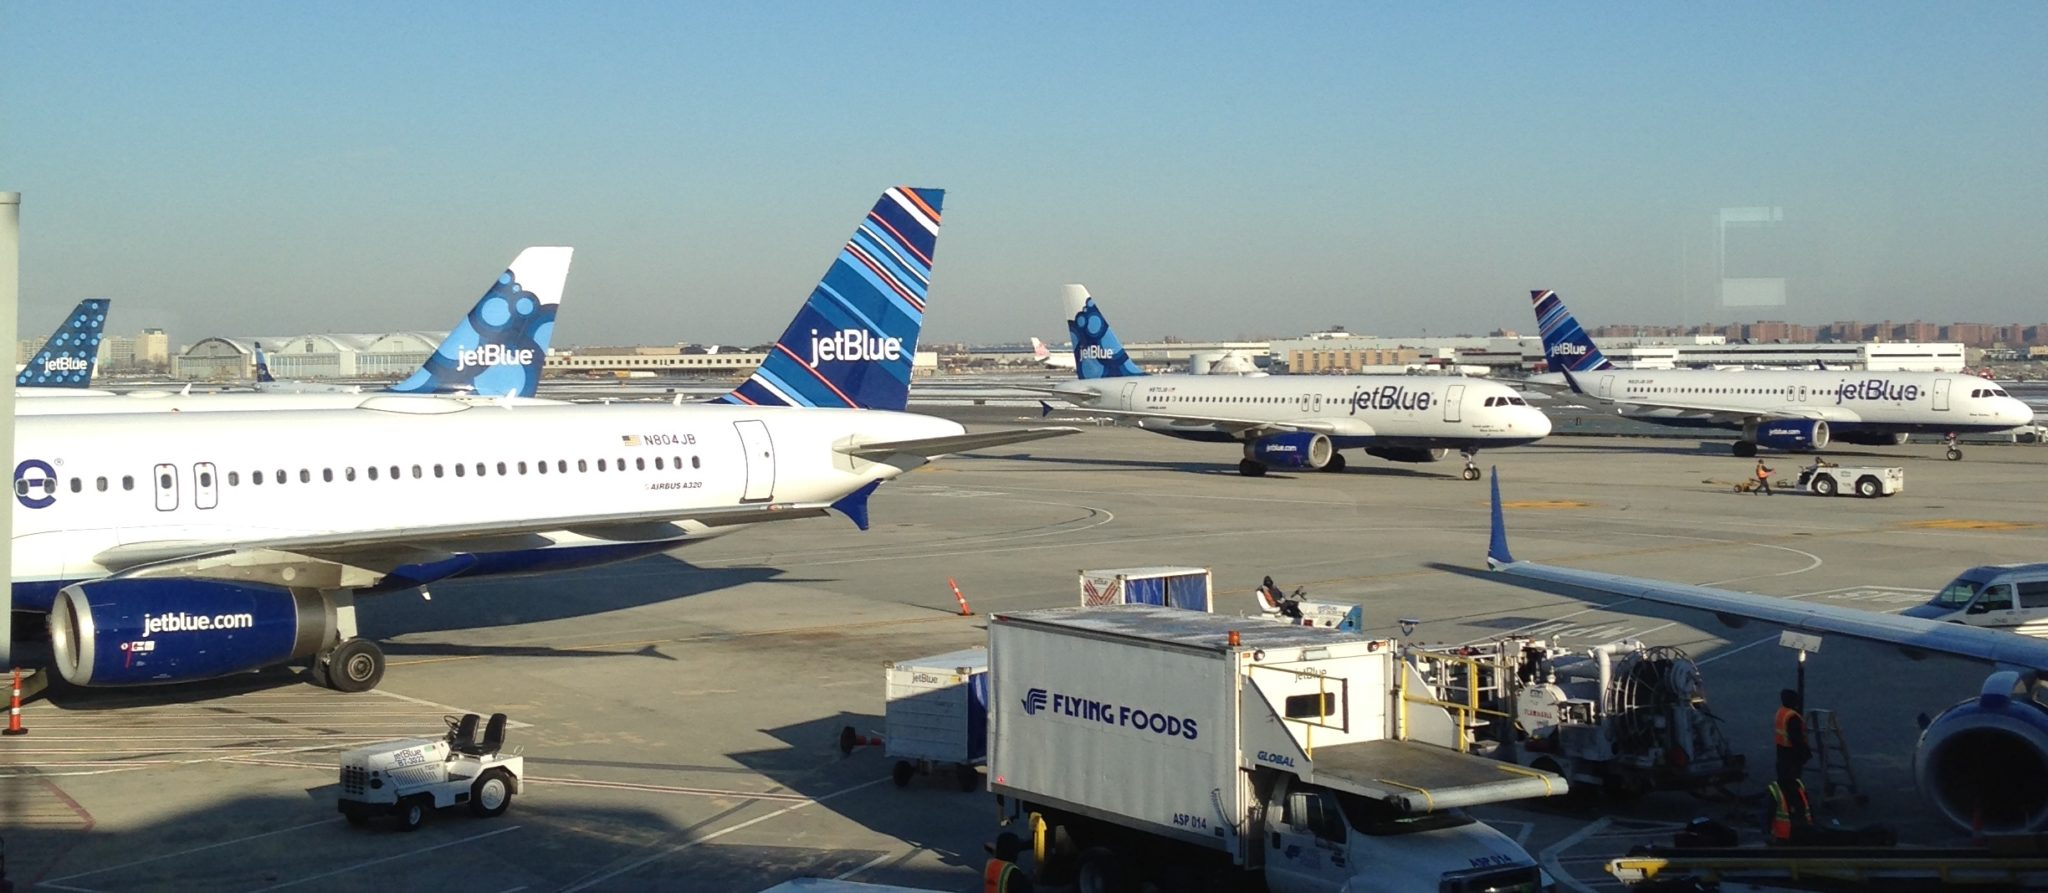 Emirates bets on JetBlue Caribbean/LatAm FLL connections